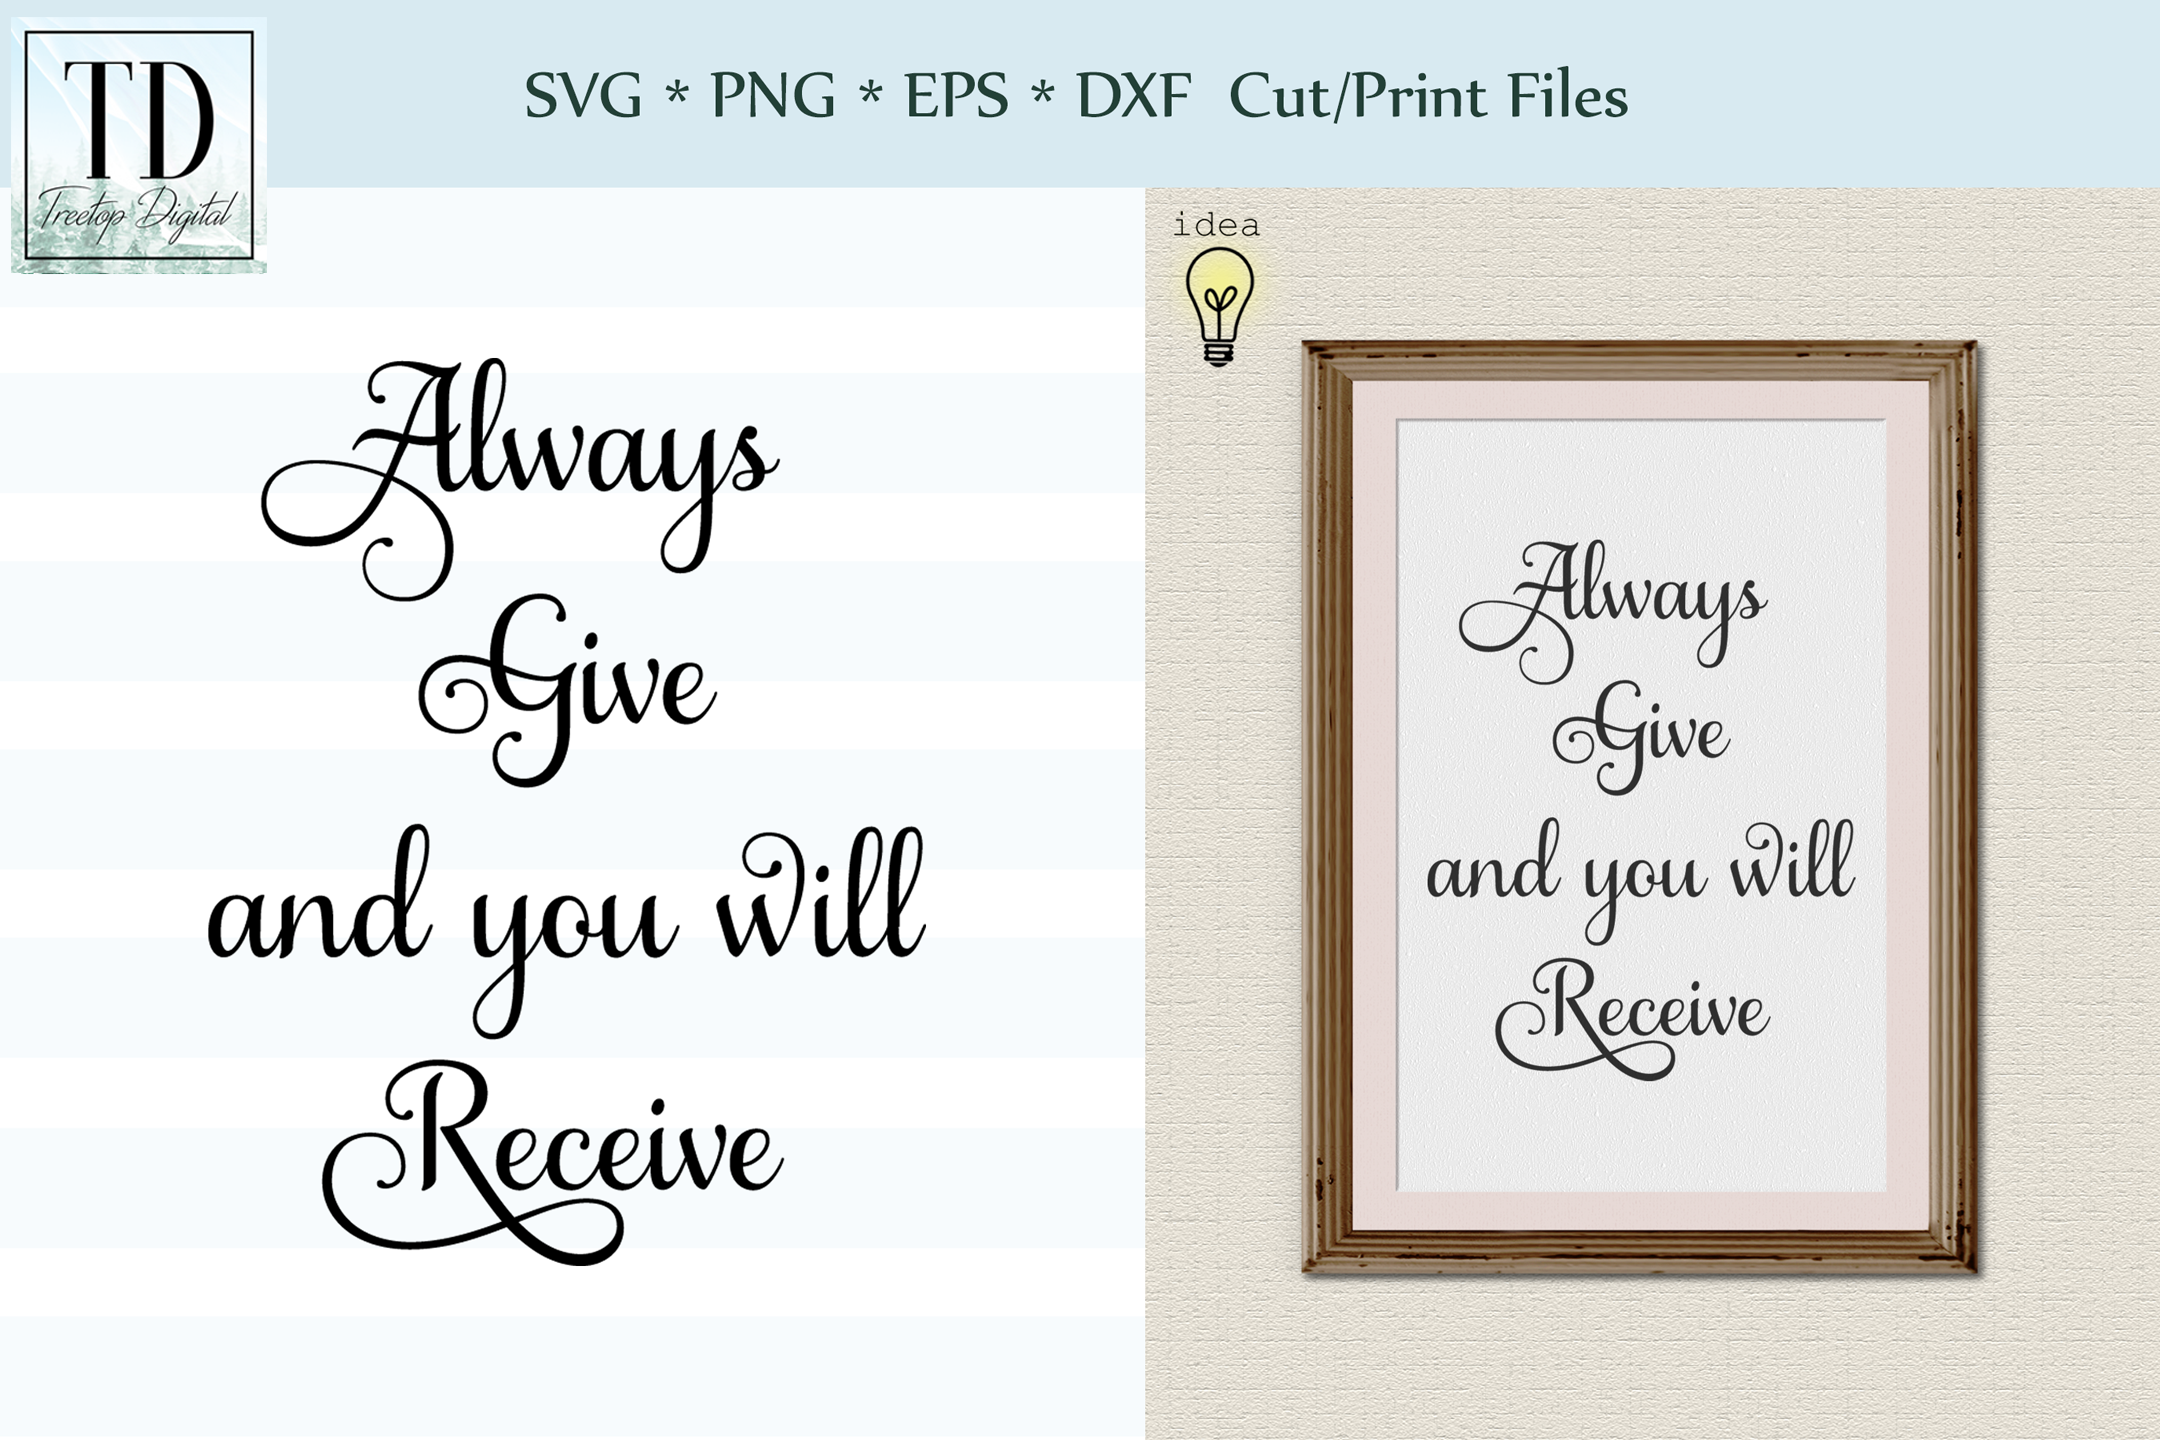 Always Give and you will Receive, SVG Cut or Print Files example image 1